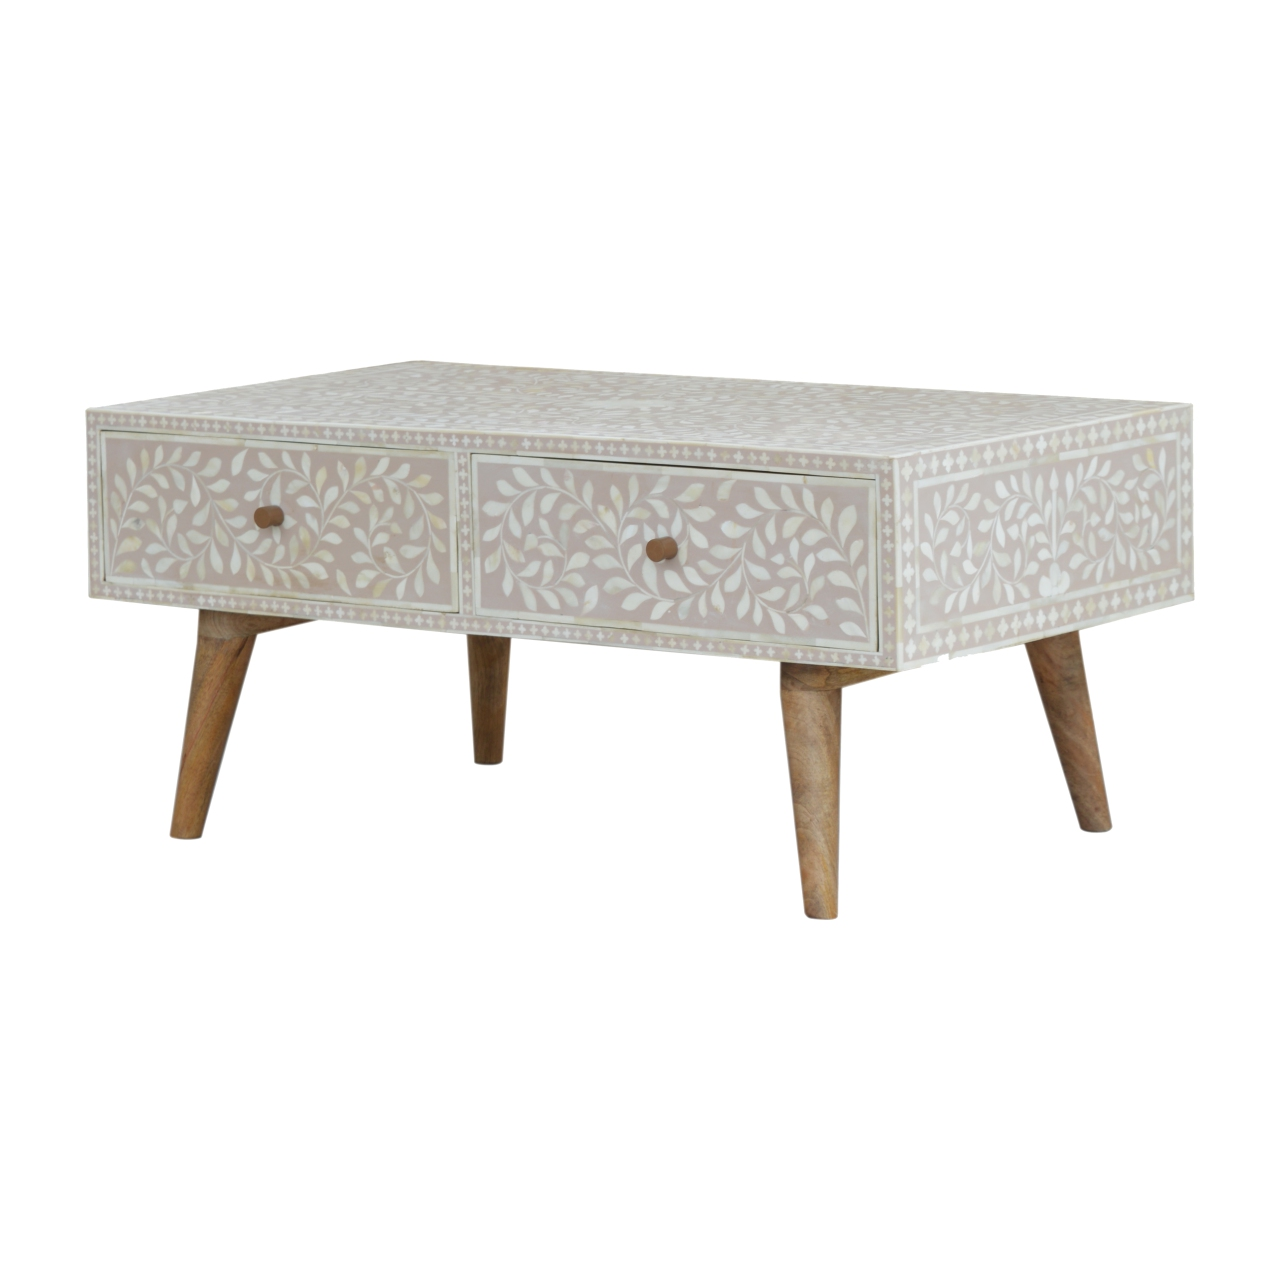 Light-Taupe-Floral-Bone-Inlay-Coffee-Table-2